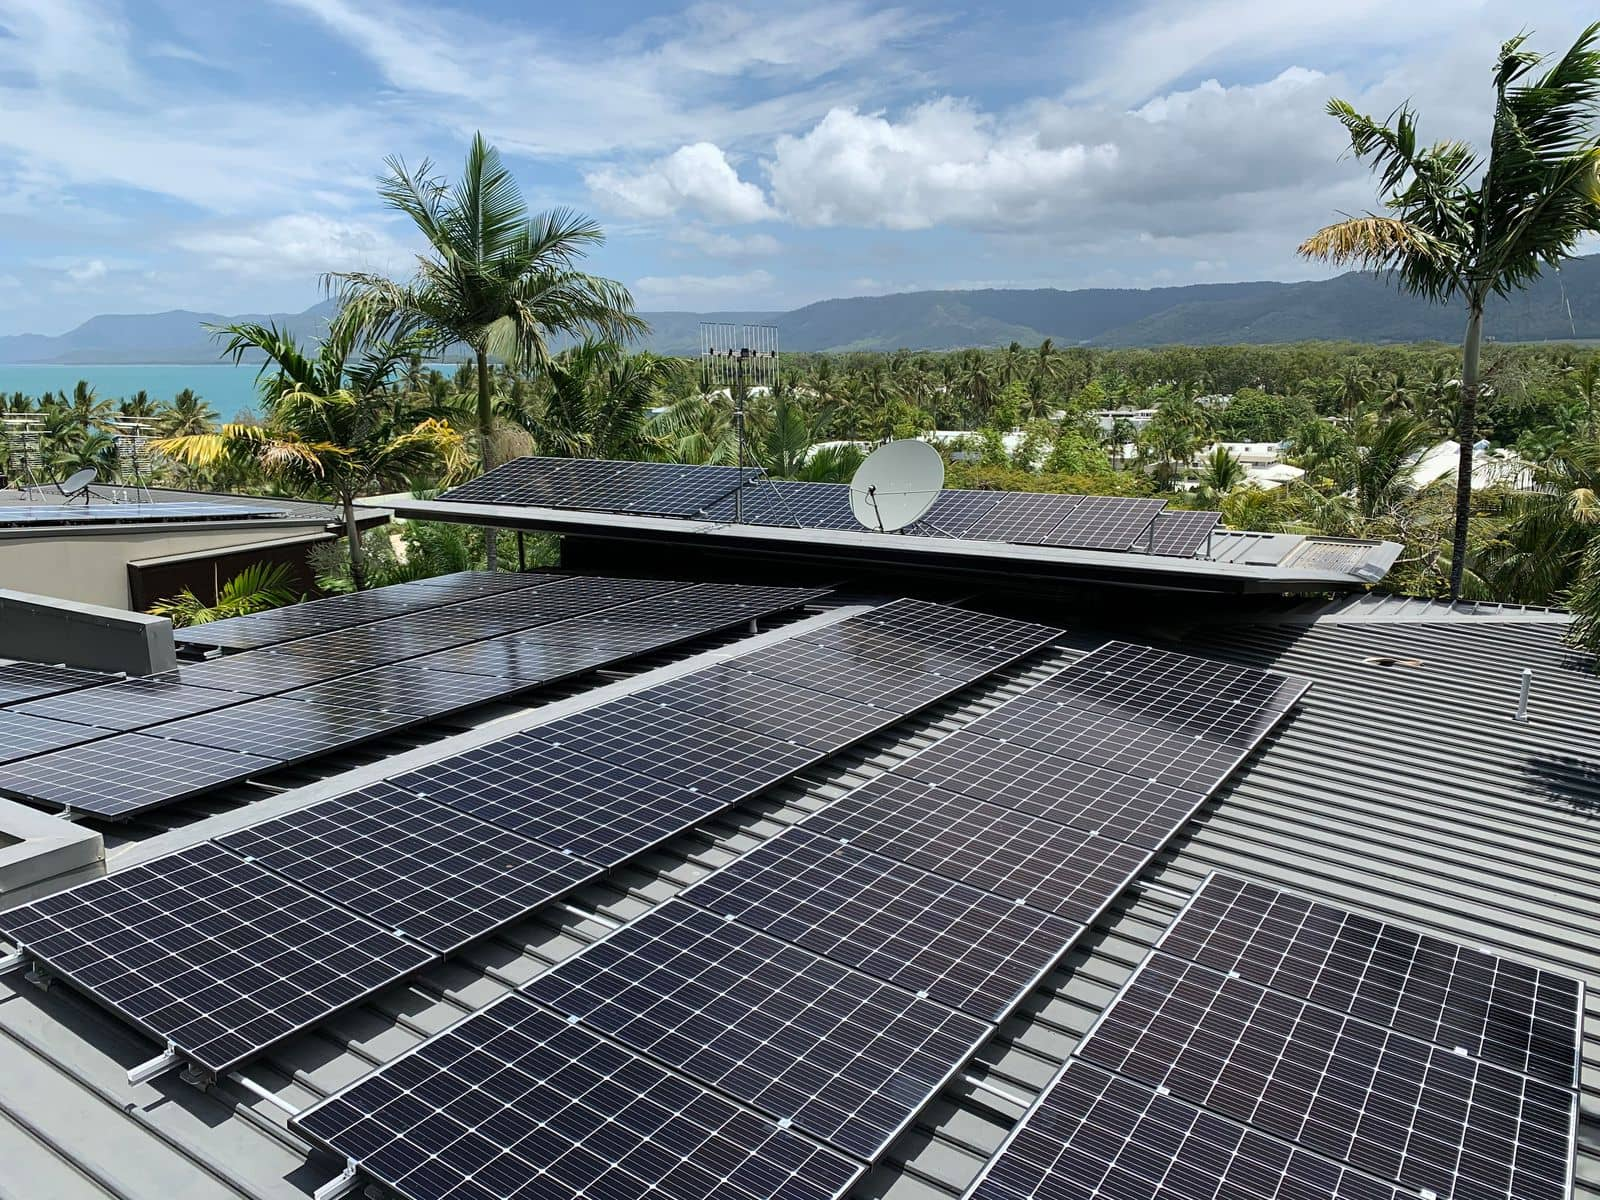 port douglas residential solar system roof photo